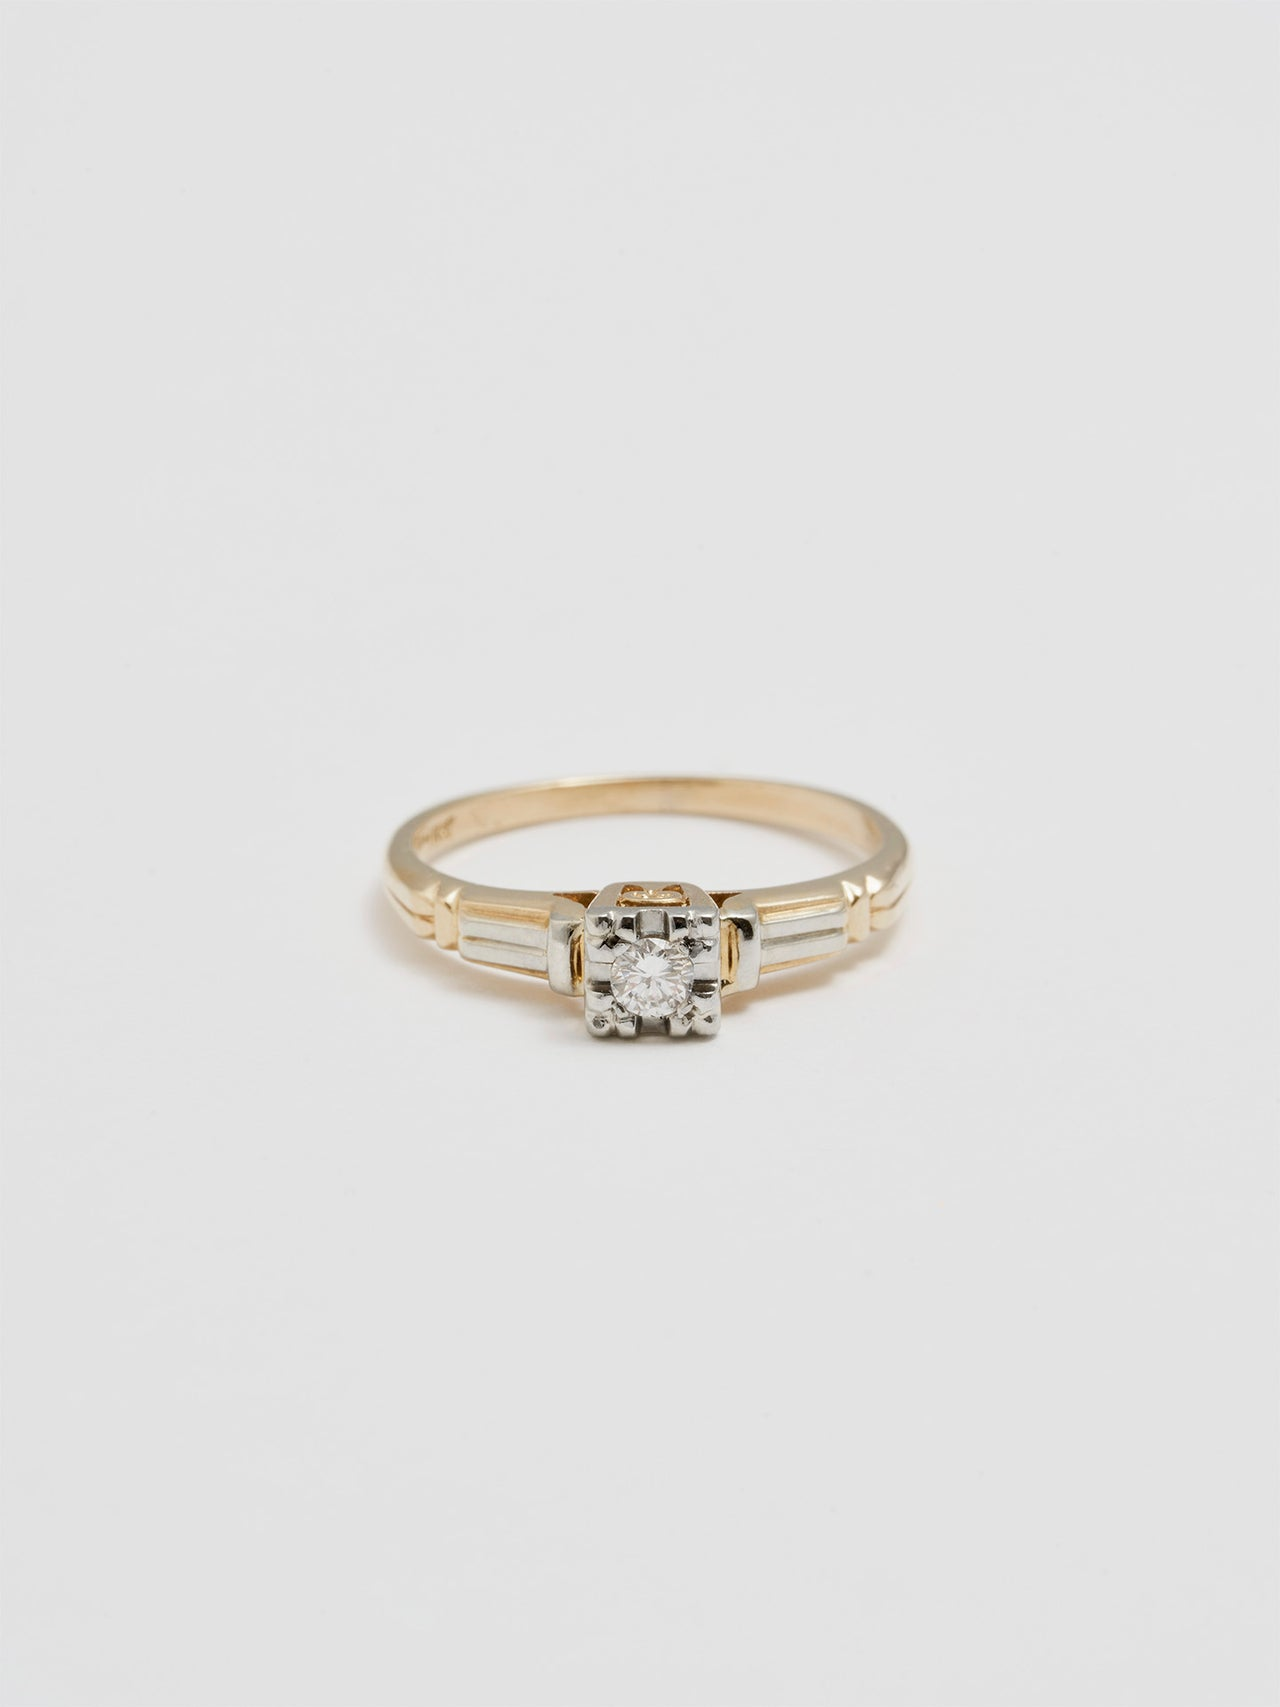 Vintage Eternal Diamond Ring